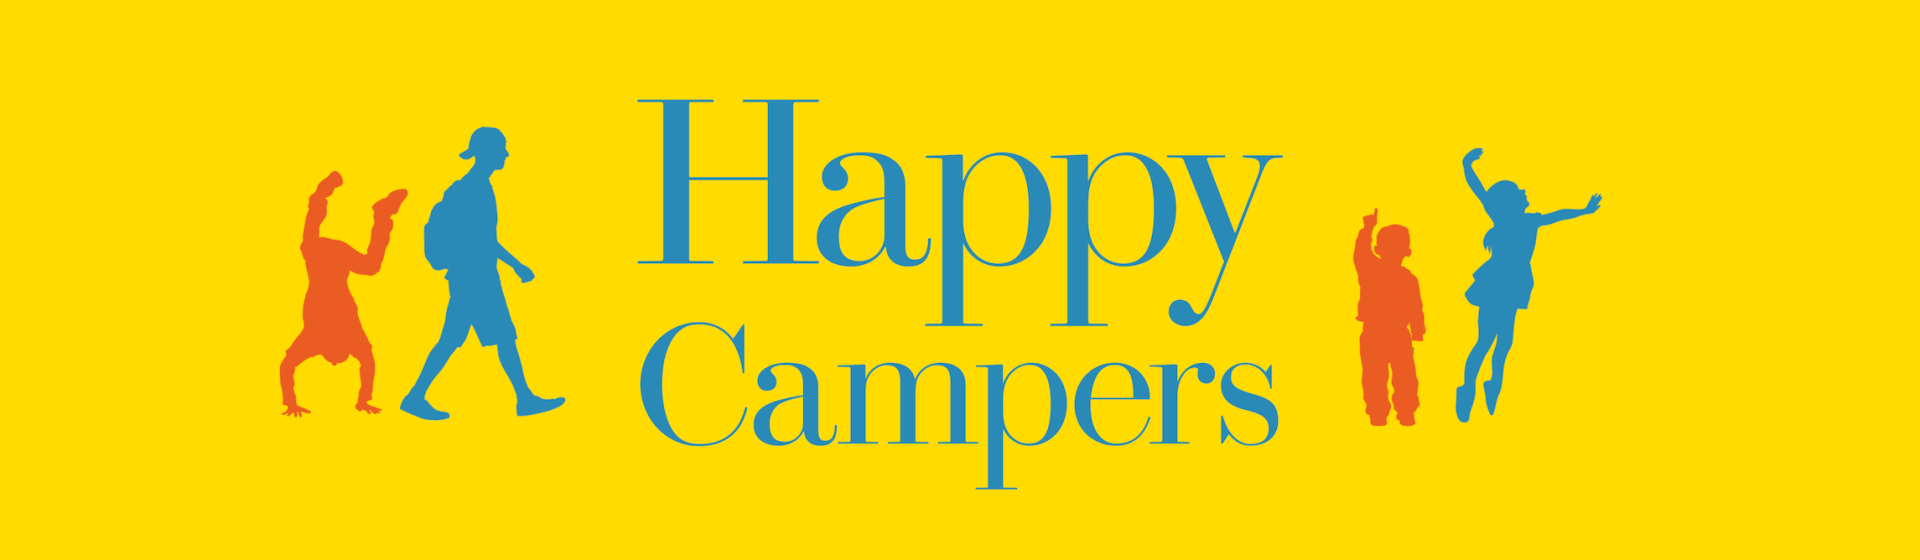 Happy Campers by Audrey Monke | Center Street